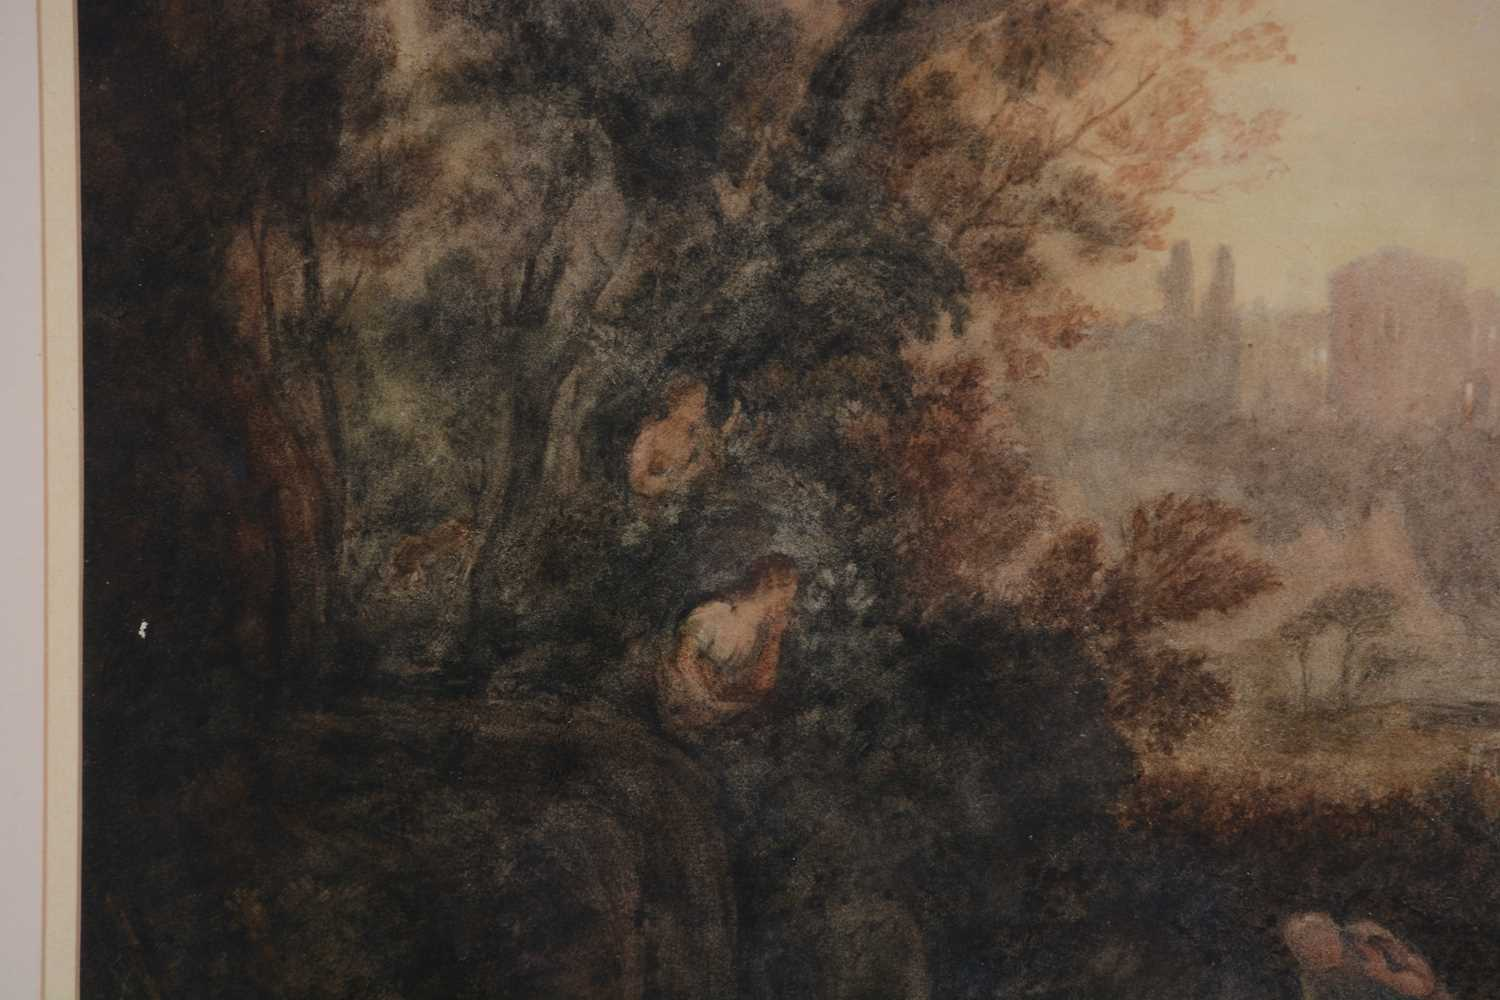 Attributed to Joseph Mallord William Turner, RA - watercolour - Image 7 of 11